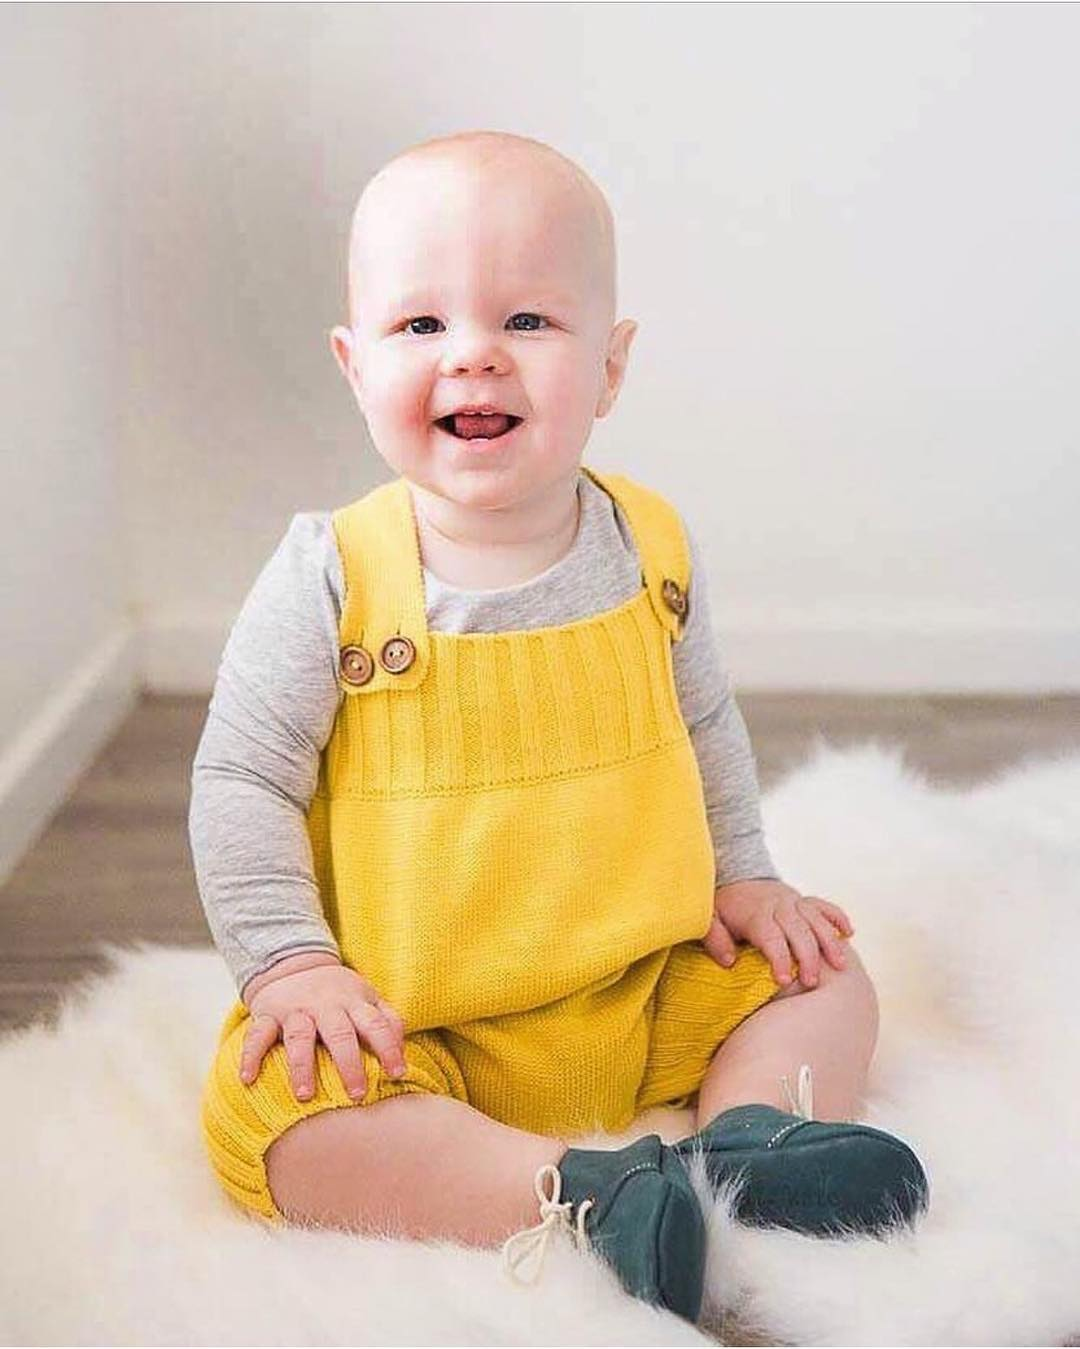 Quality_baby_shoes_for_children,_toddlers_and_babies._Soft_soles,_natural_leather _9098_width=480x480